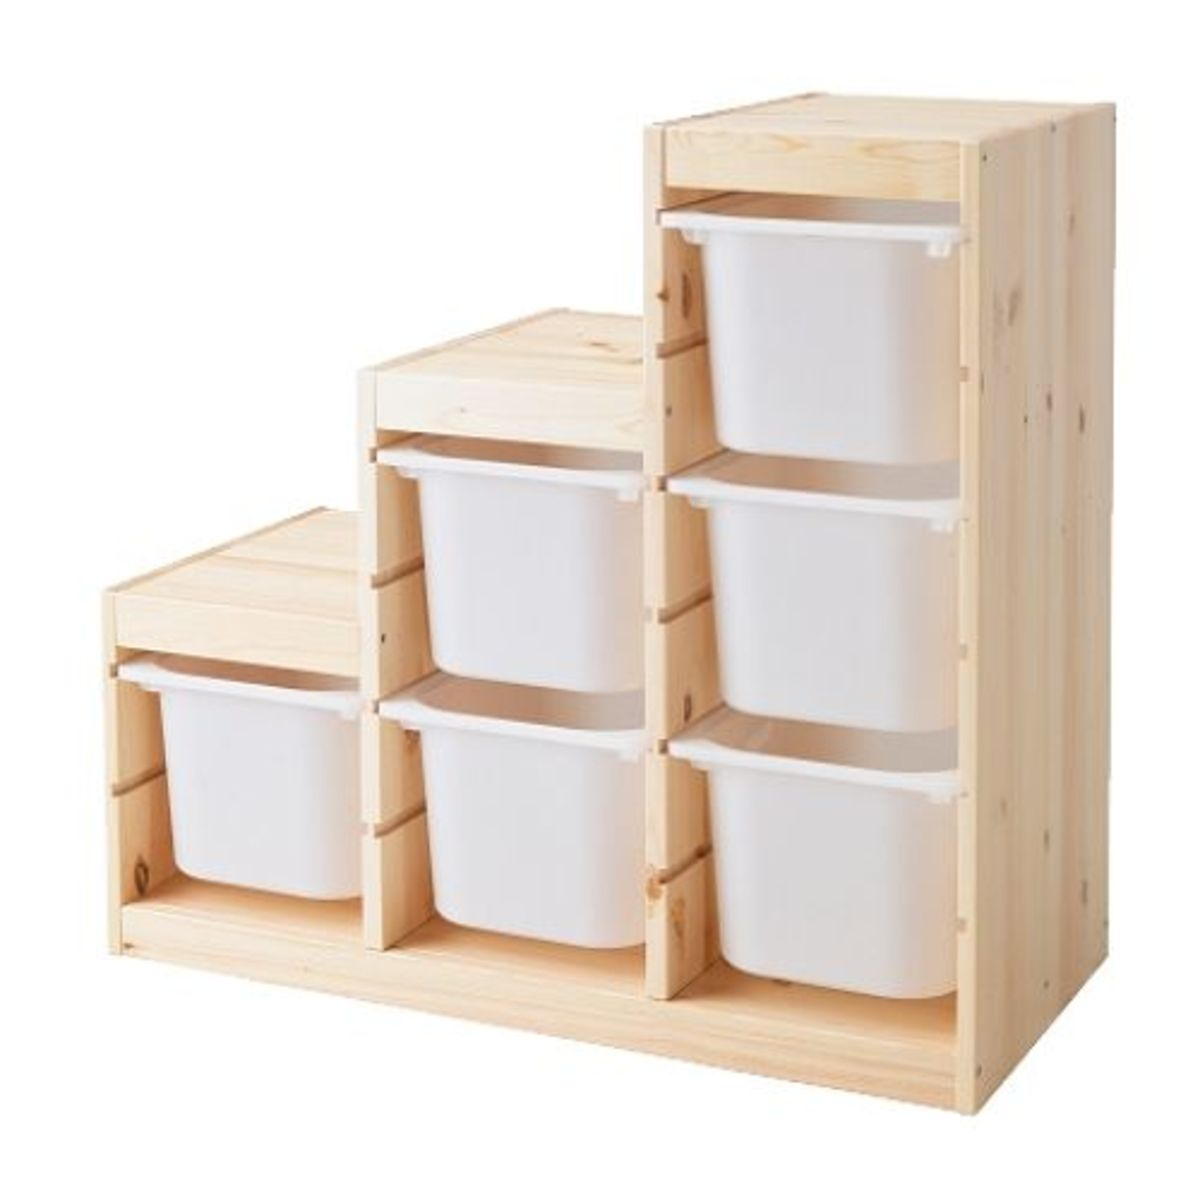 Trofast Storage Unit  - Image Credit: IKEA